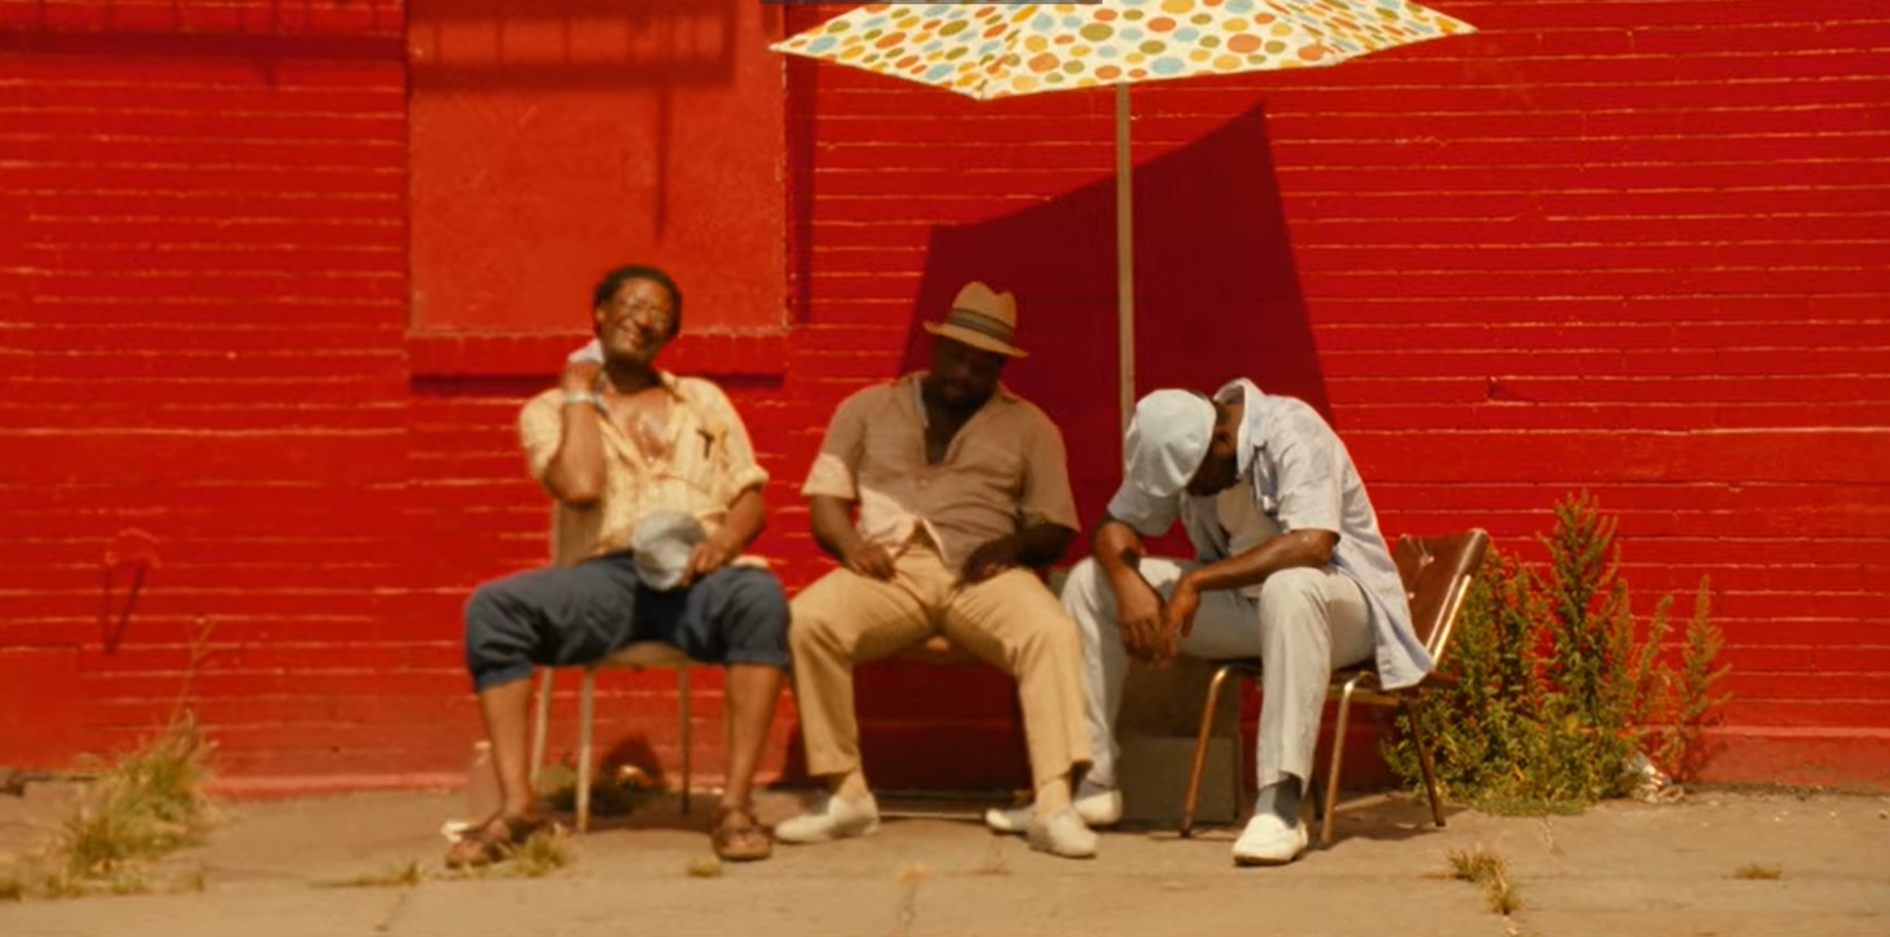 Heat Effect in Do the Right Thing